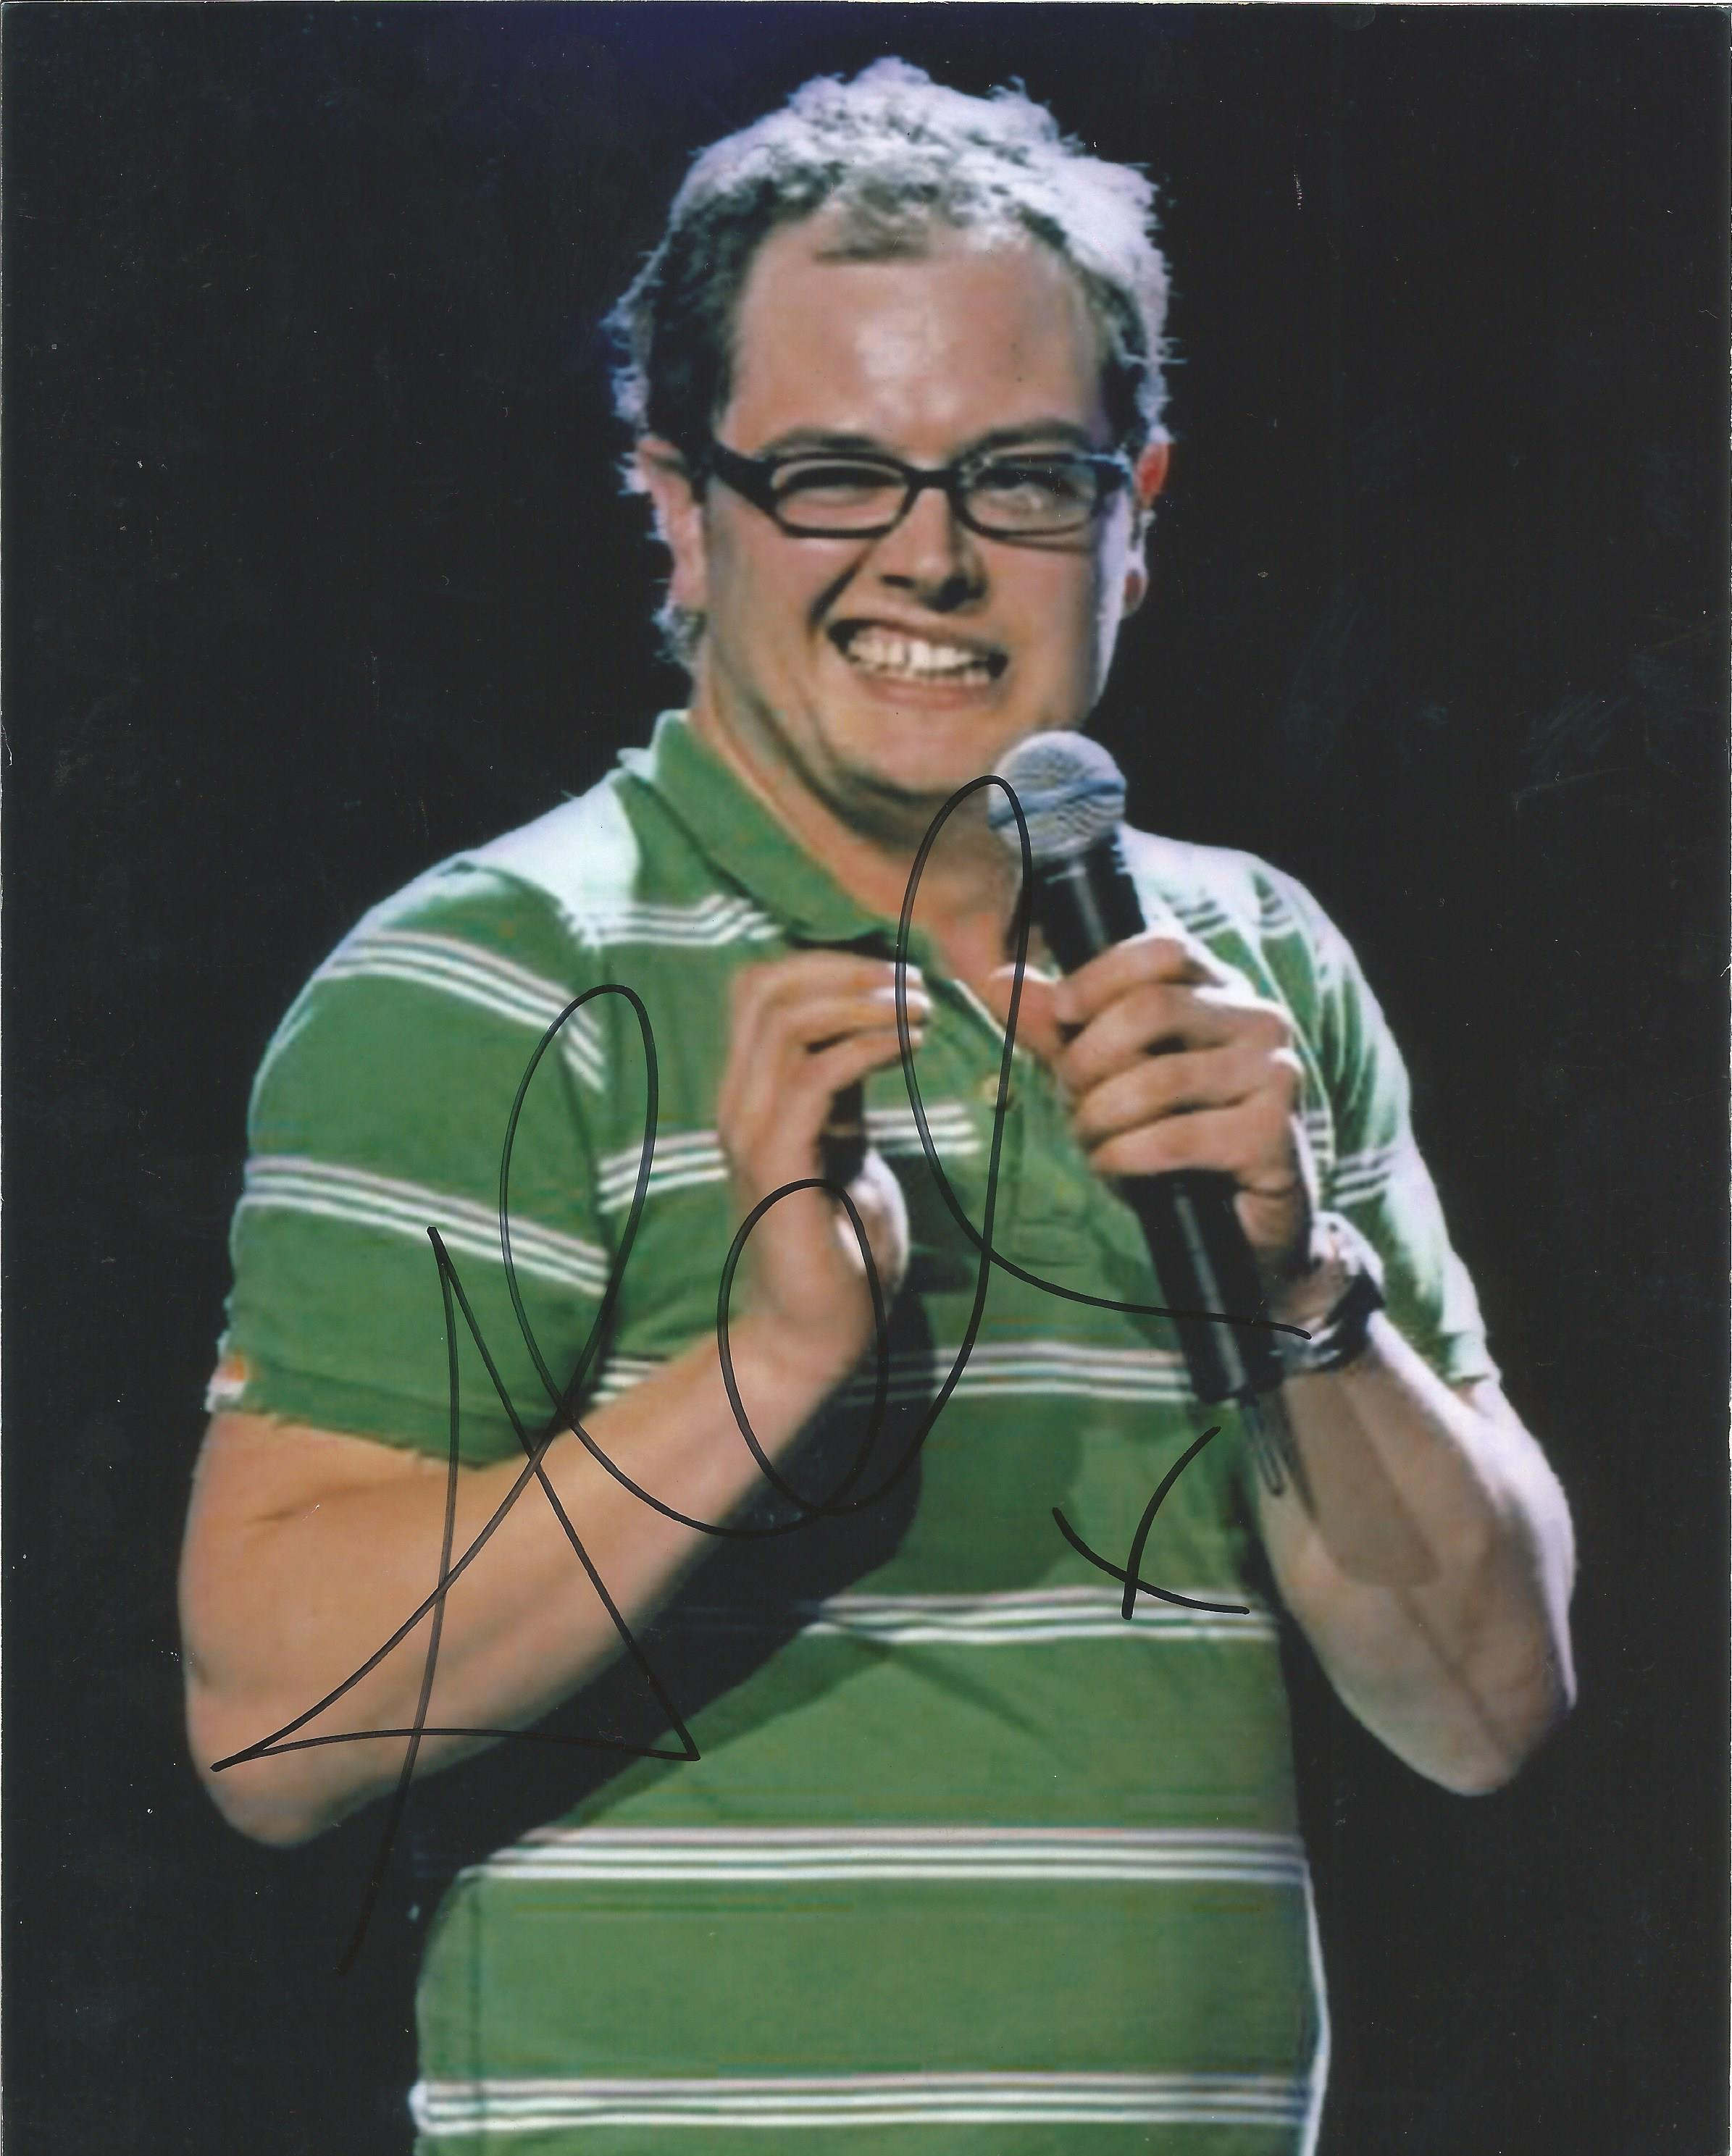 Lot 12 - Alan Carr signed 10 x 8 colour Stand up Tour Portrait Photo, from in person collection autographed